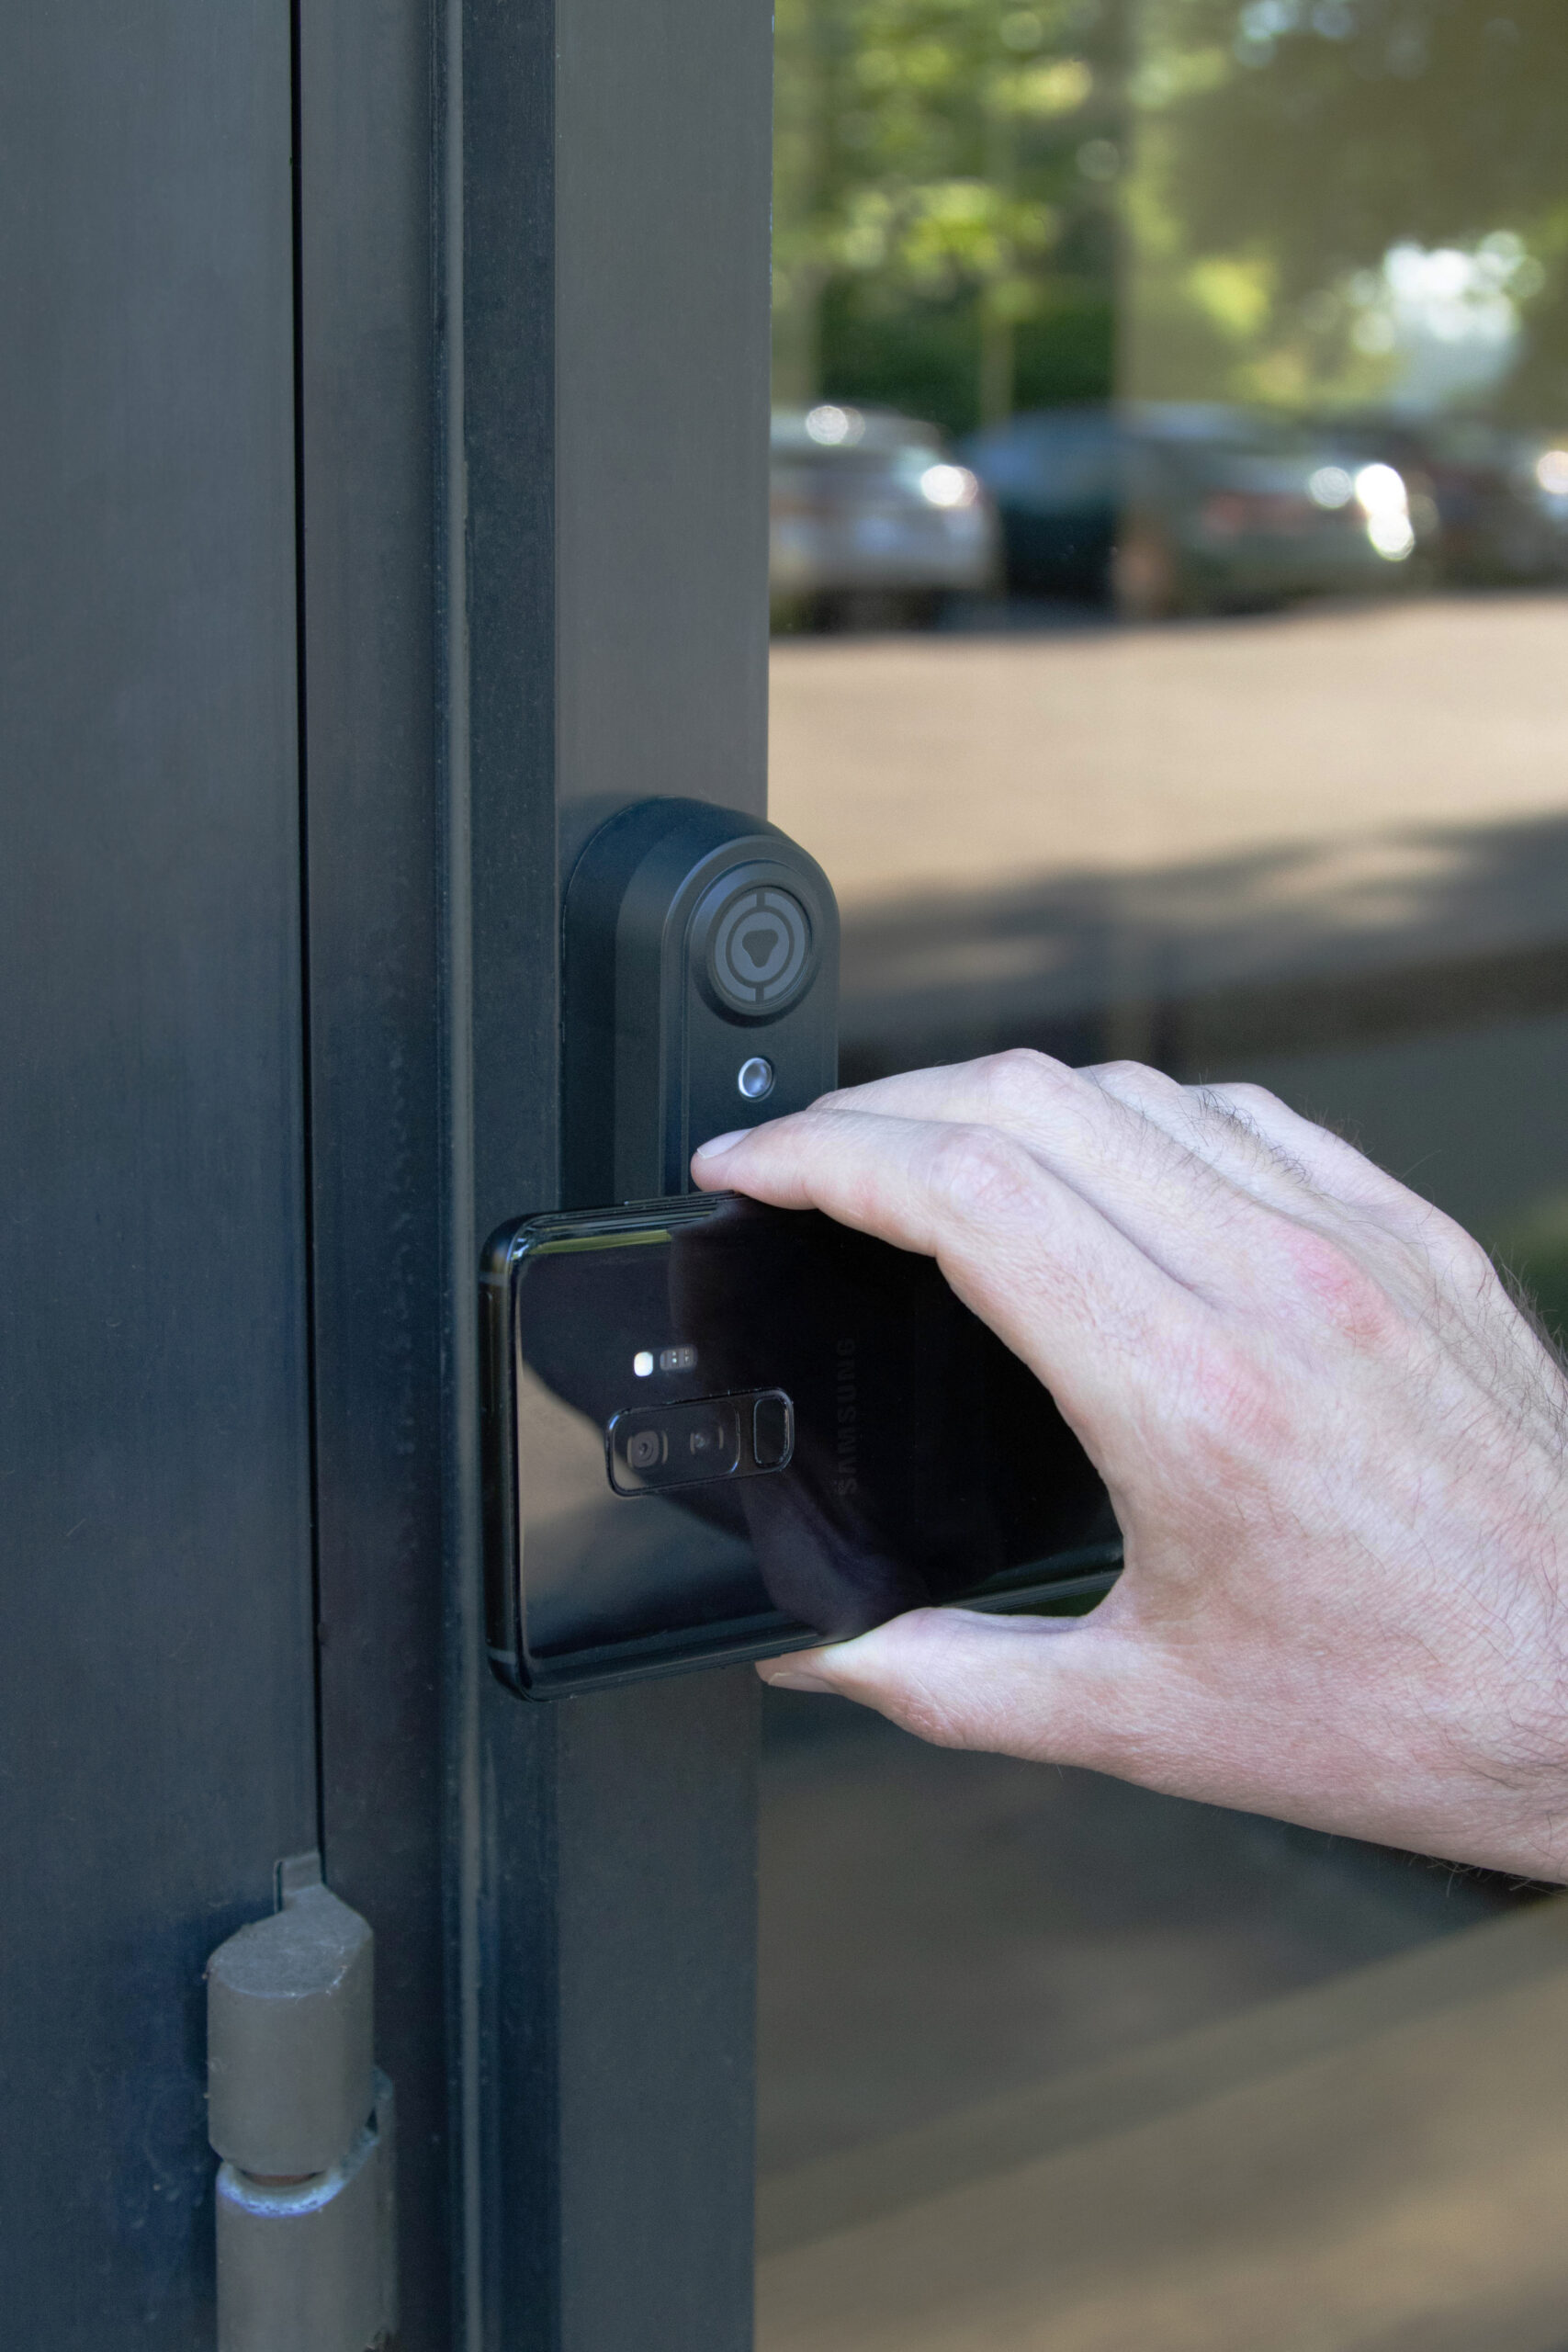 Phone Based Access Control